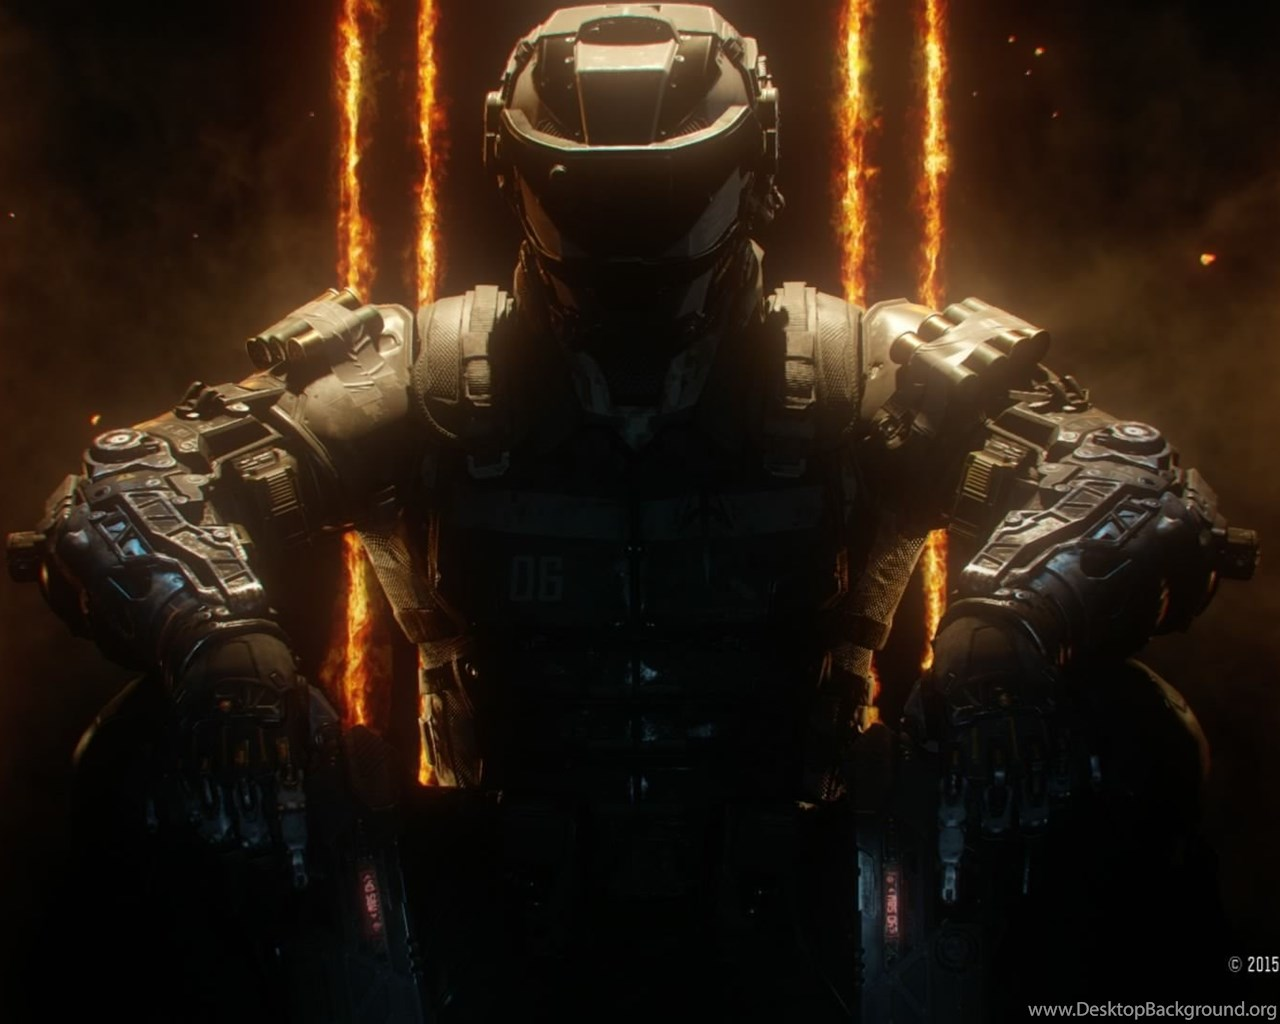 Great Call Of Duty Black Ops III Wallpapers Desktop Background